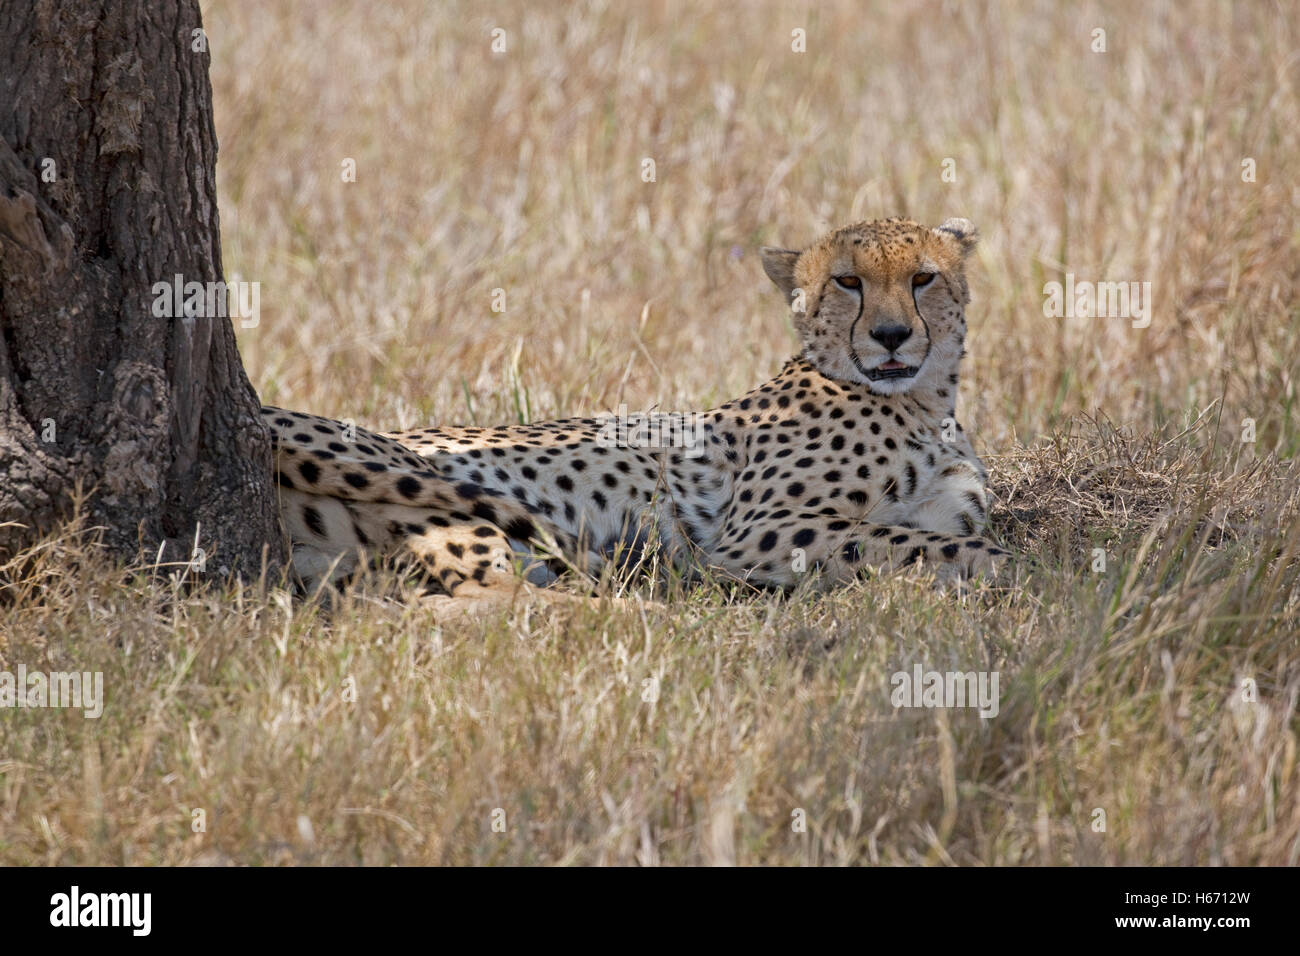 Solitary cheetah resting in shade under tree Masai Mara Kenya - Stock Image